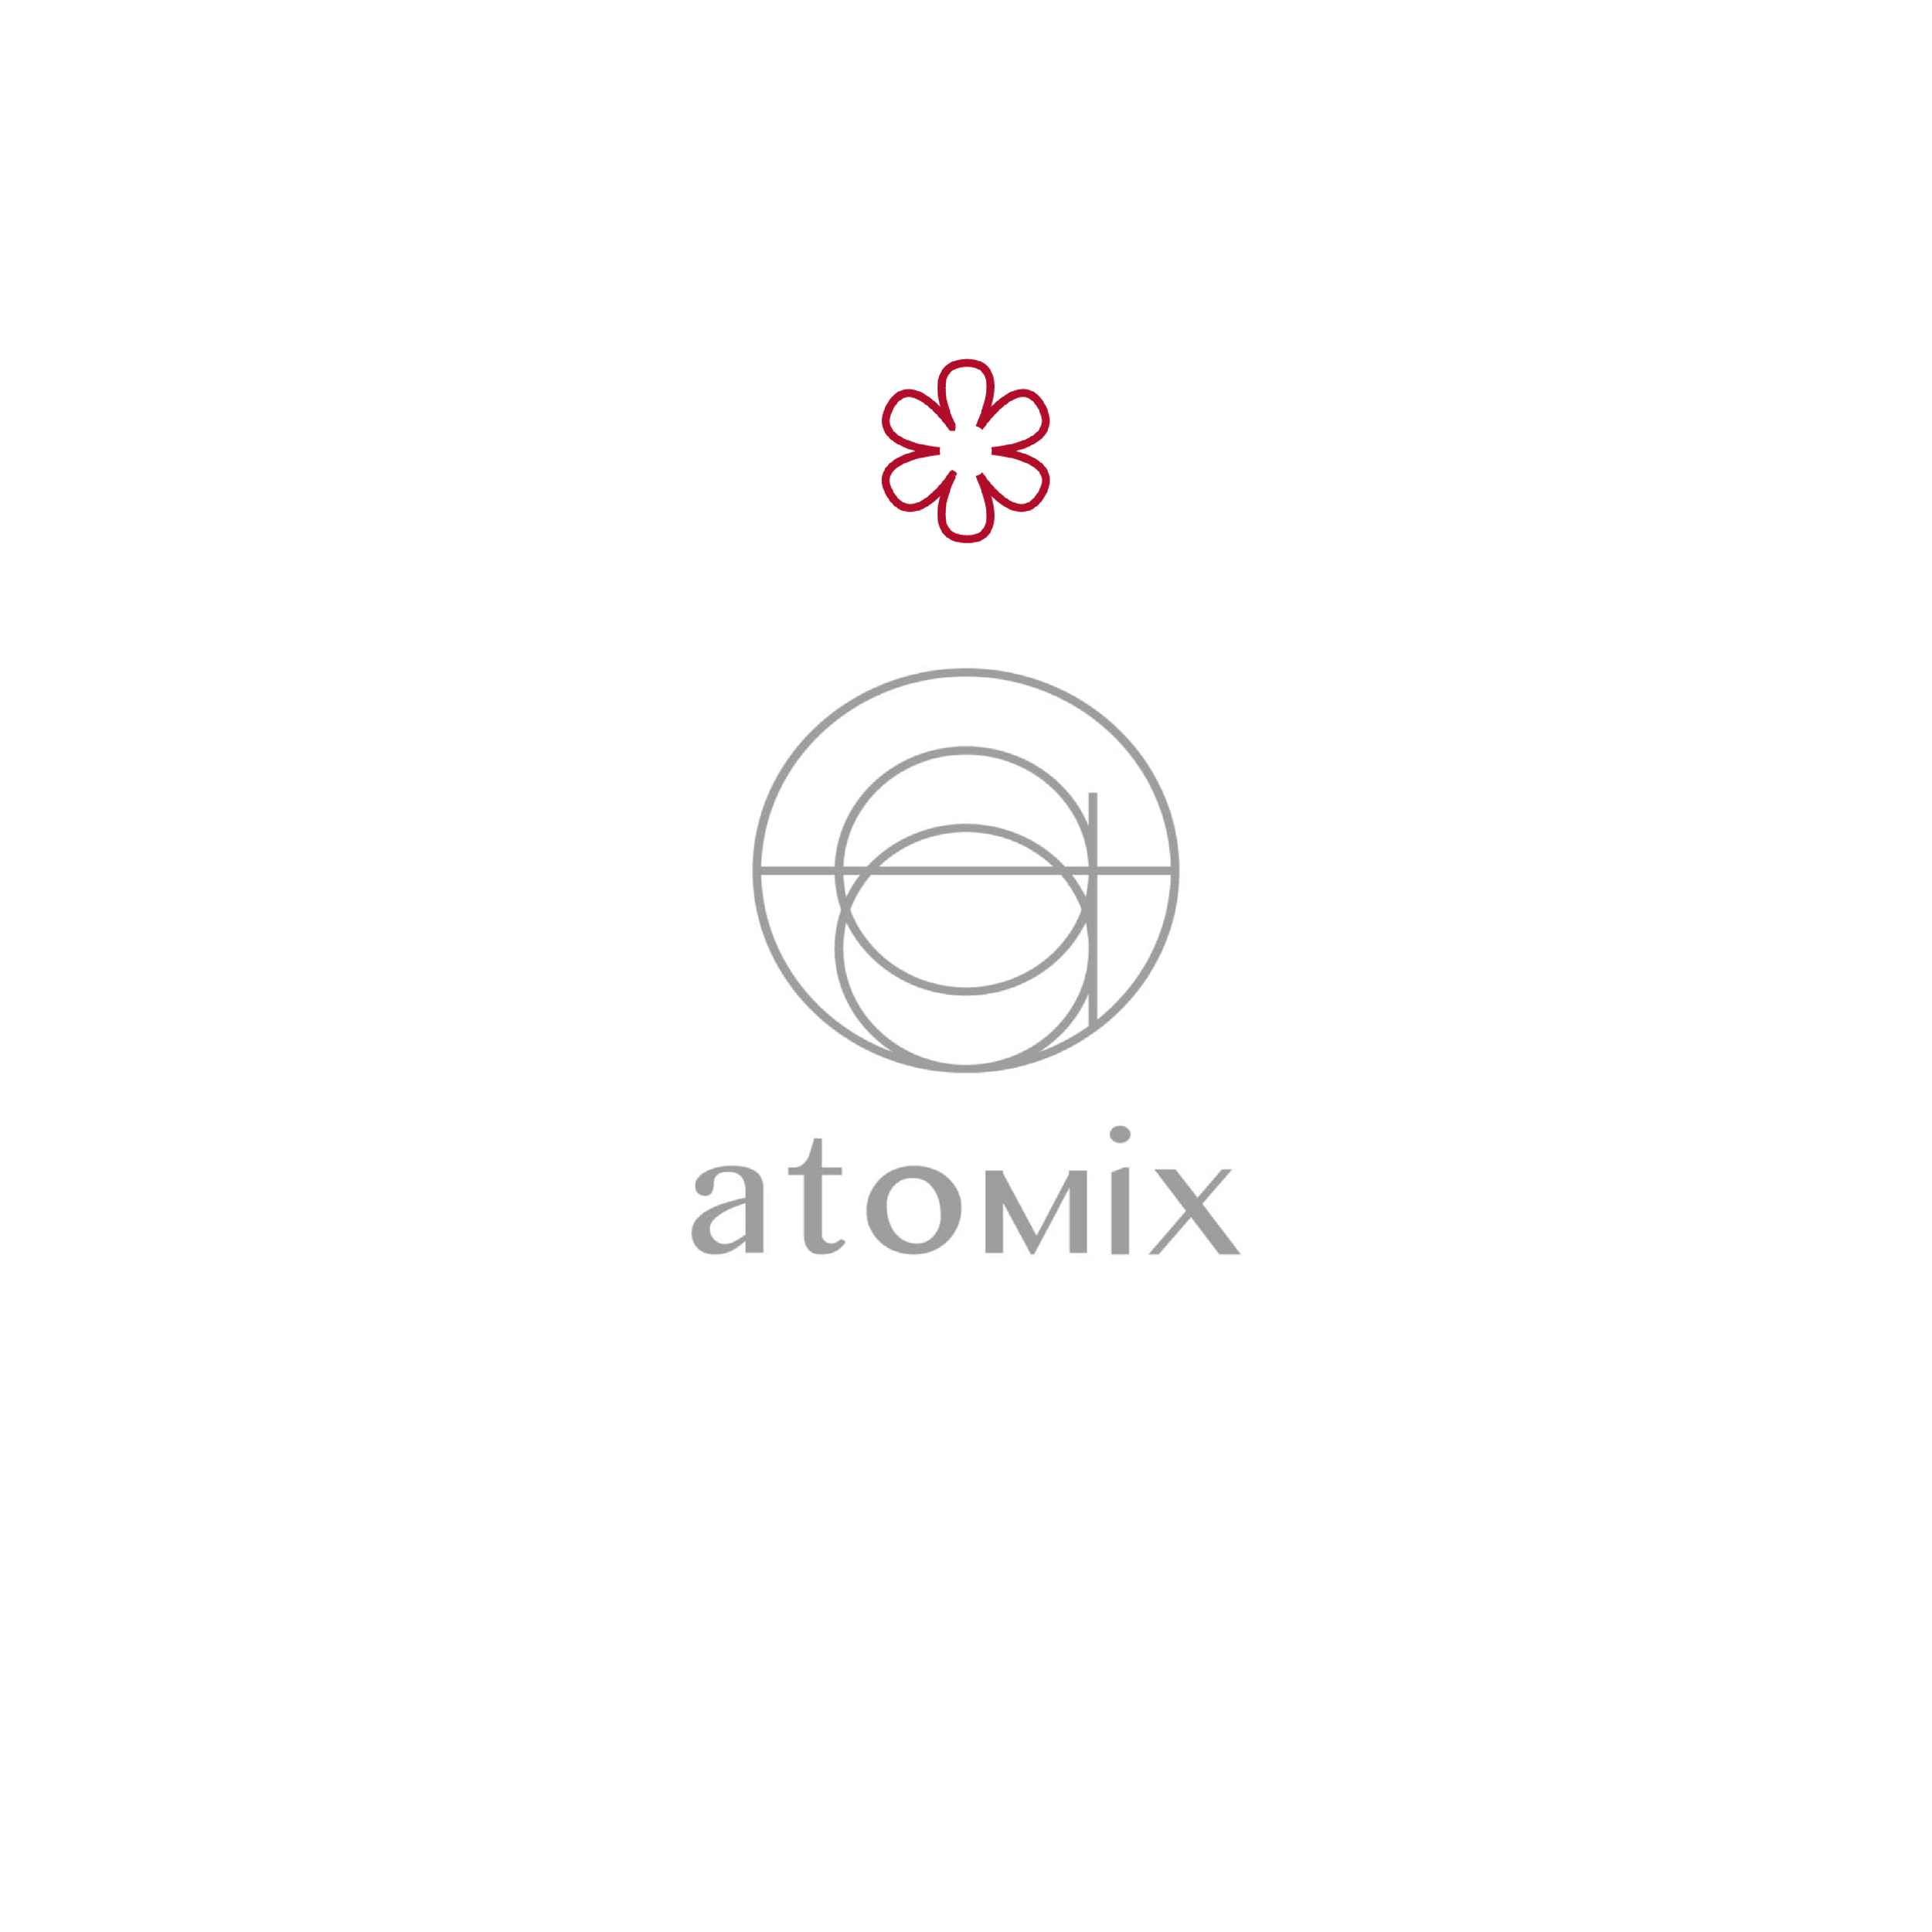 atomix + 1 star.png